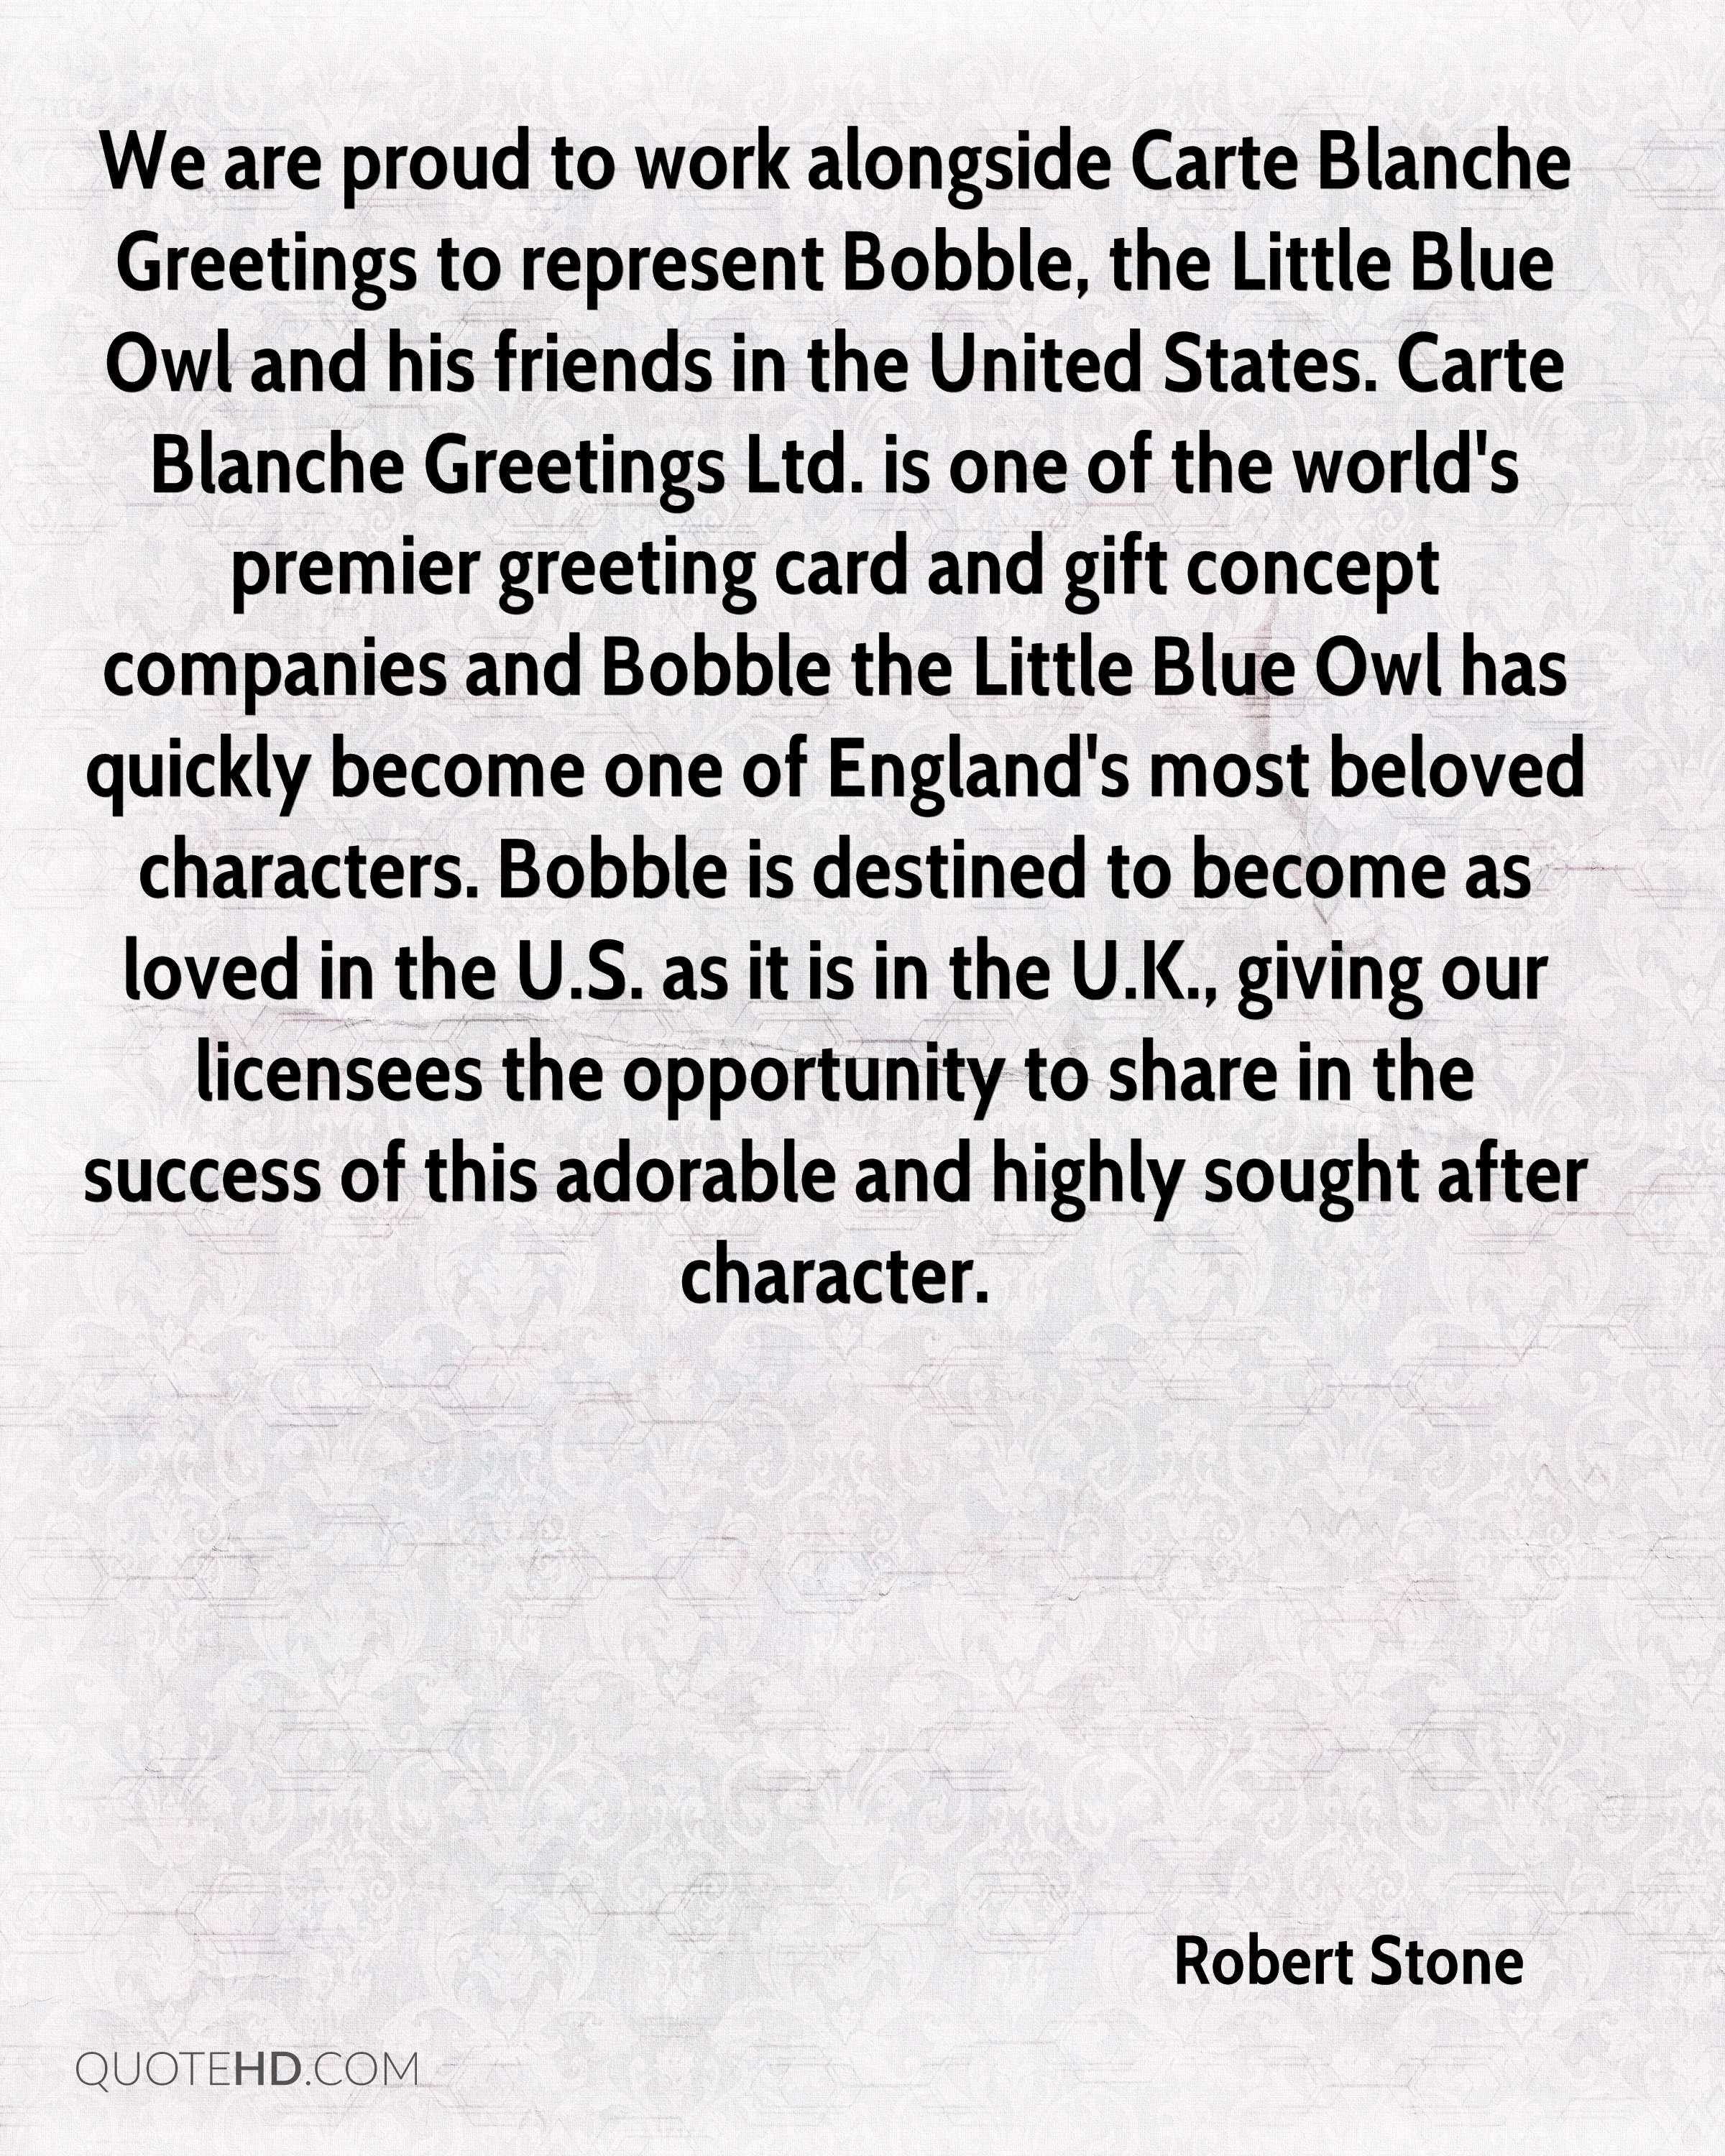 Robert stone quotes quotehd we are proud to work alongside carte blanche greetings to represent bobble the little blue m4hsunfo